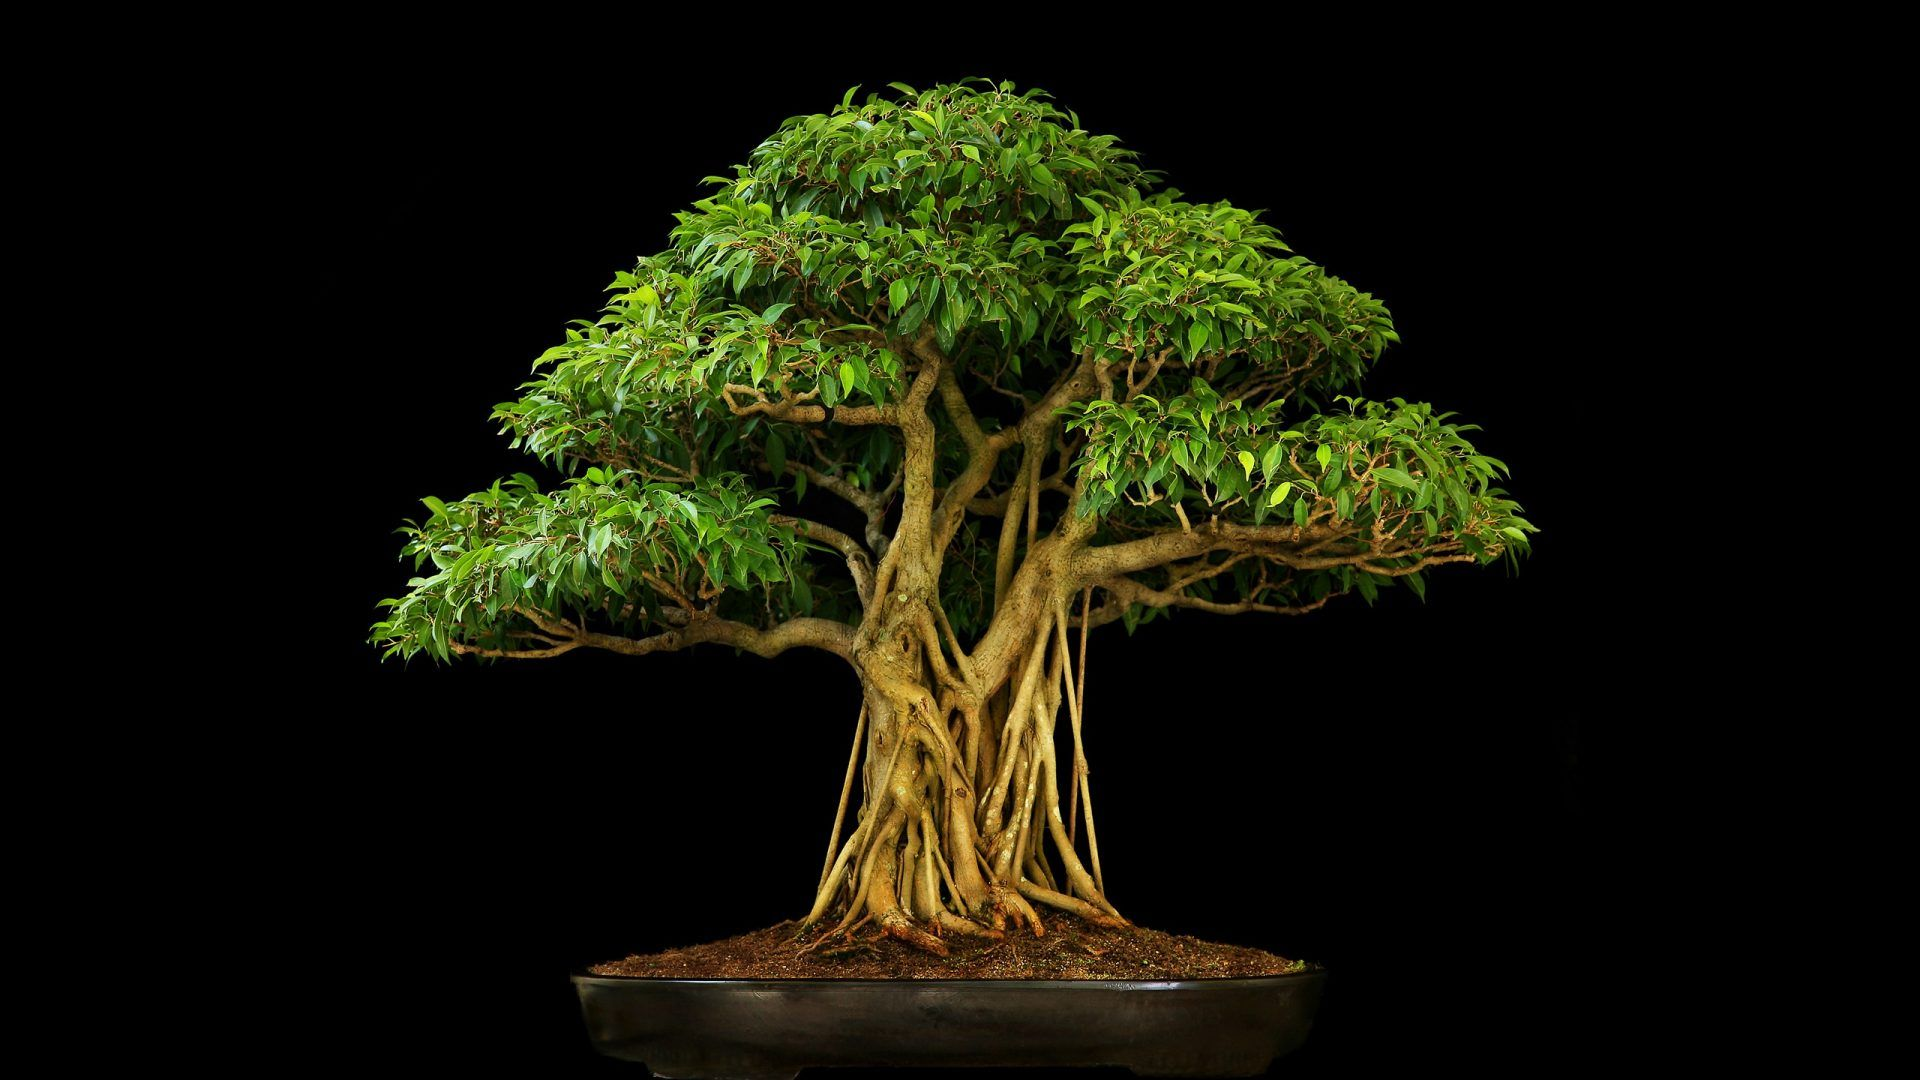 Trees Tree Black Bonsai Leaves Beautiful Nature Wallpapers 1920x1080 For Hd 16 9 High Definition 1080p 900p 720p Wi Ficus Bonsai Tree Bonsai Tree Bonsai Ficus